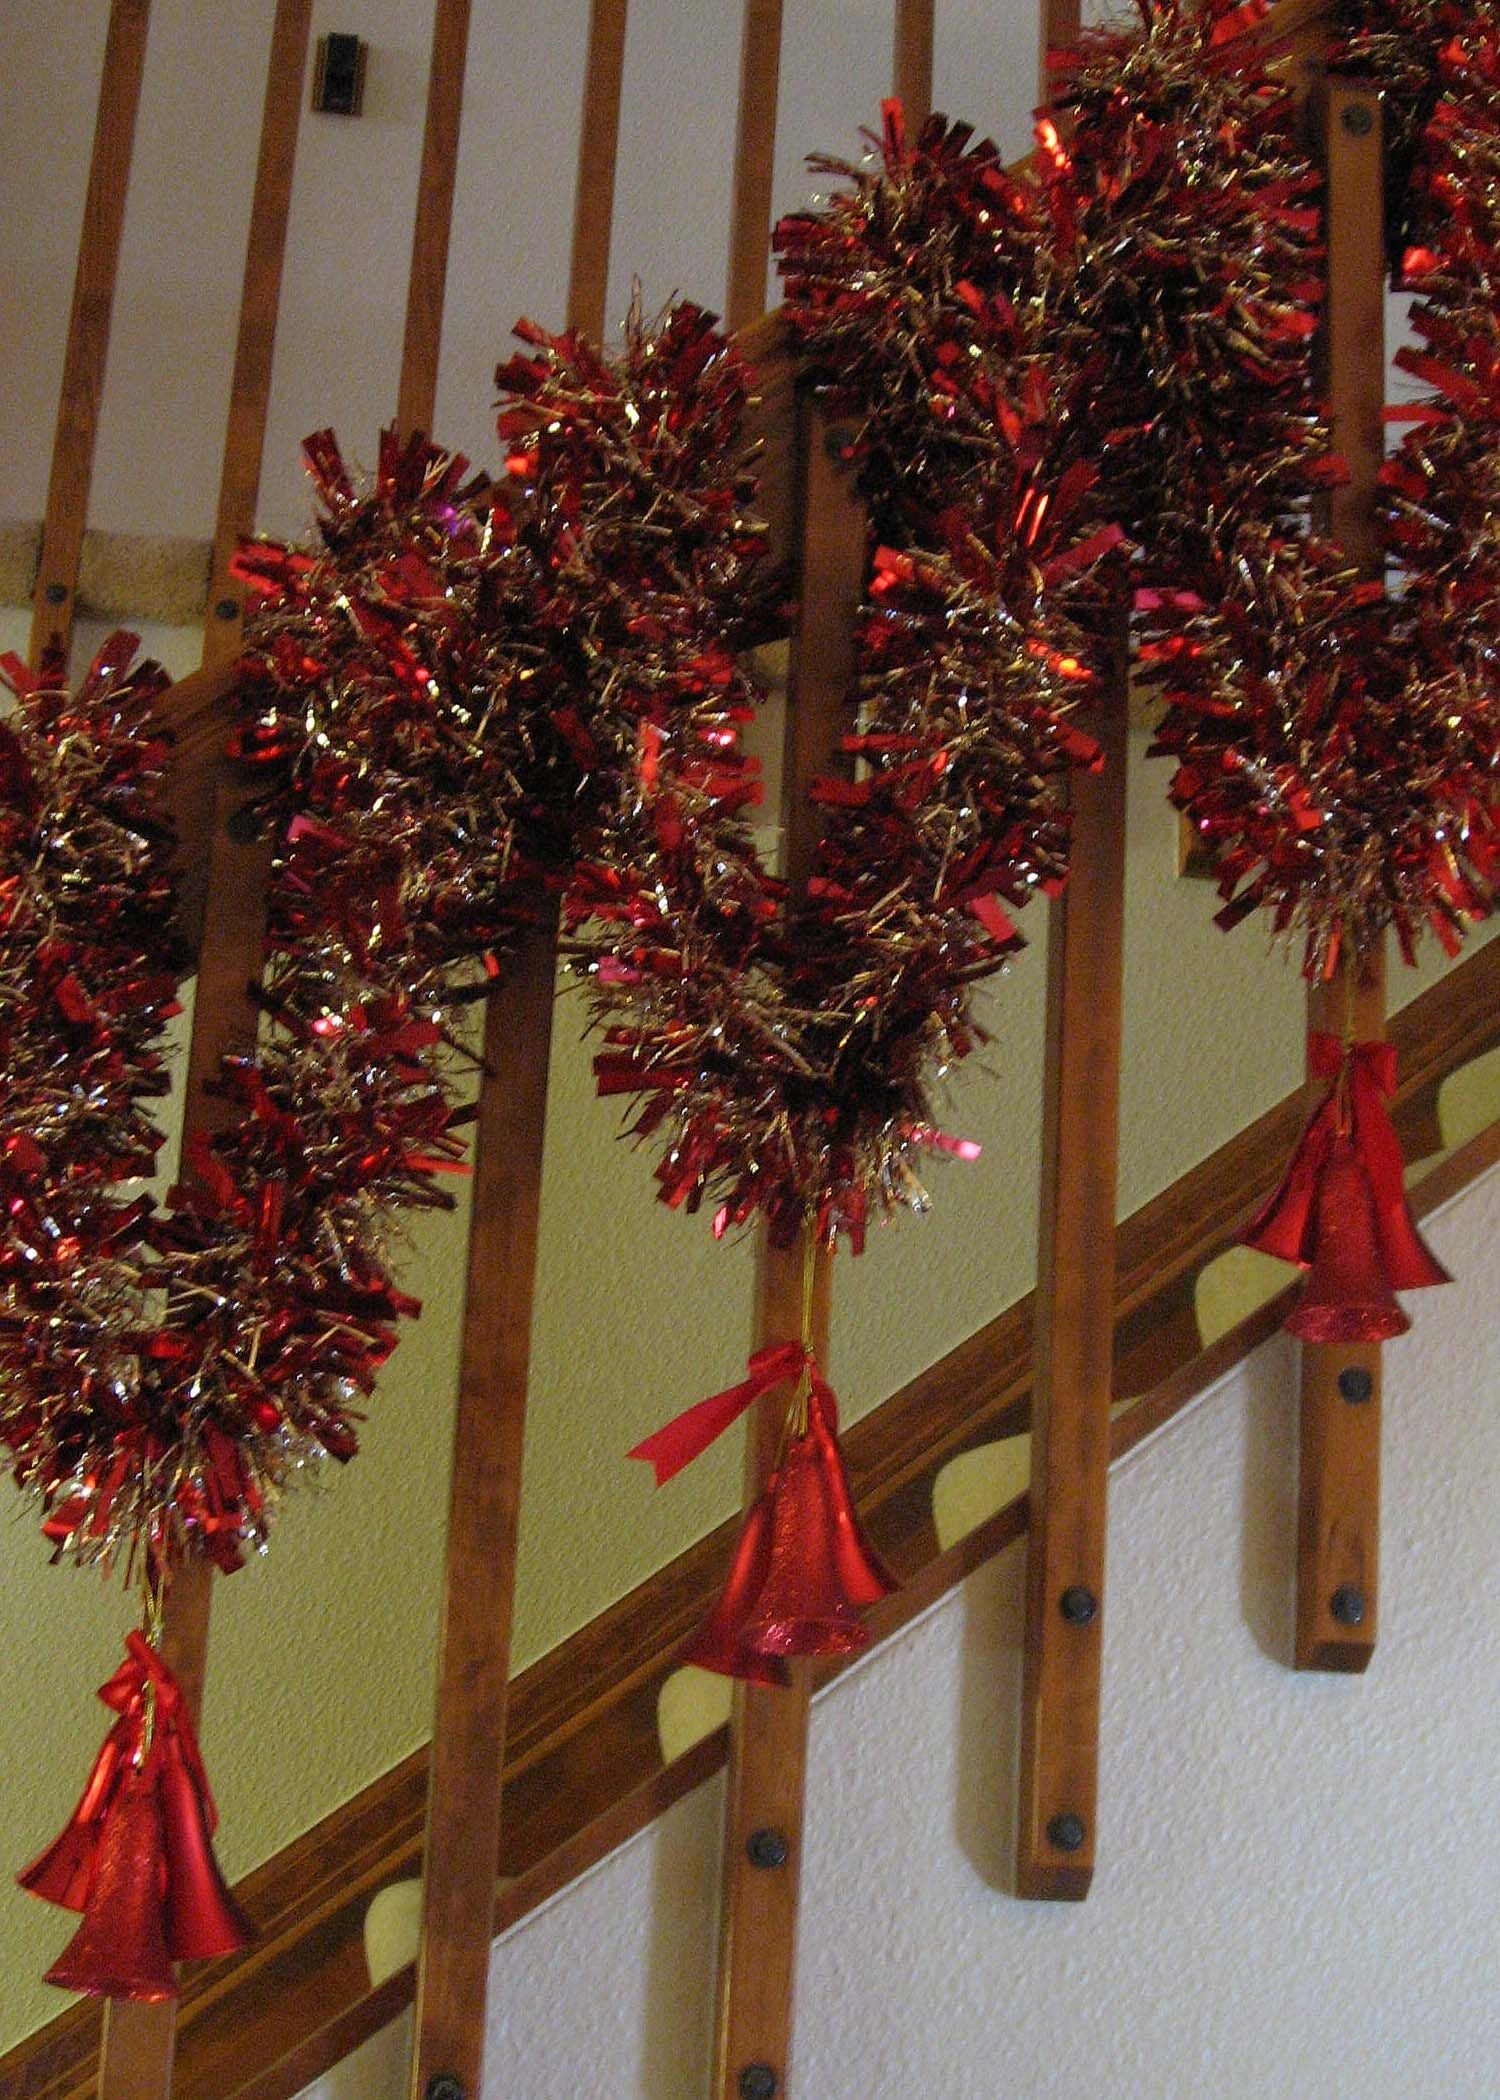 Banister Decorations | Christmas 2012 | Pinterest ...